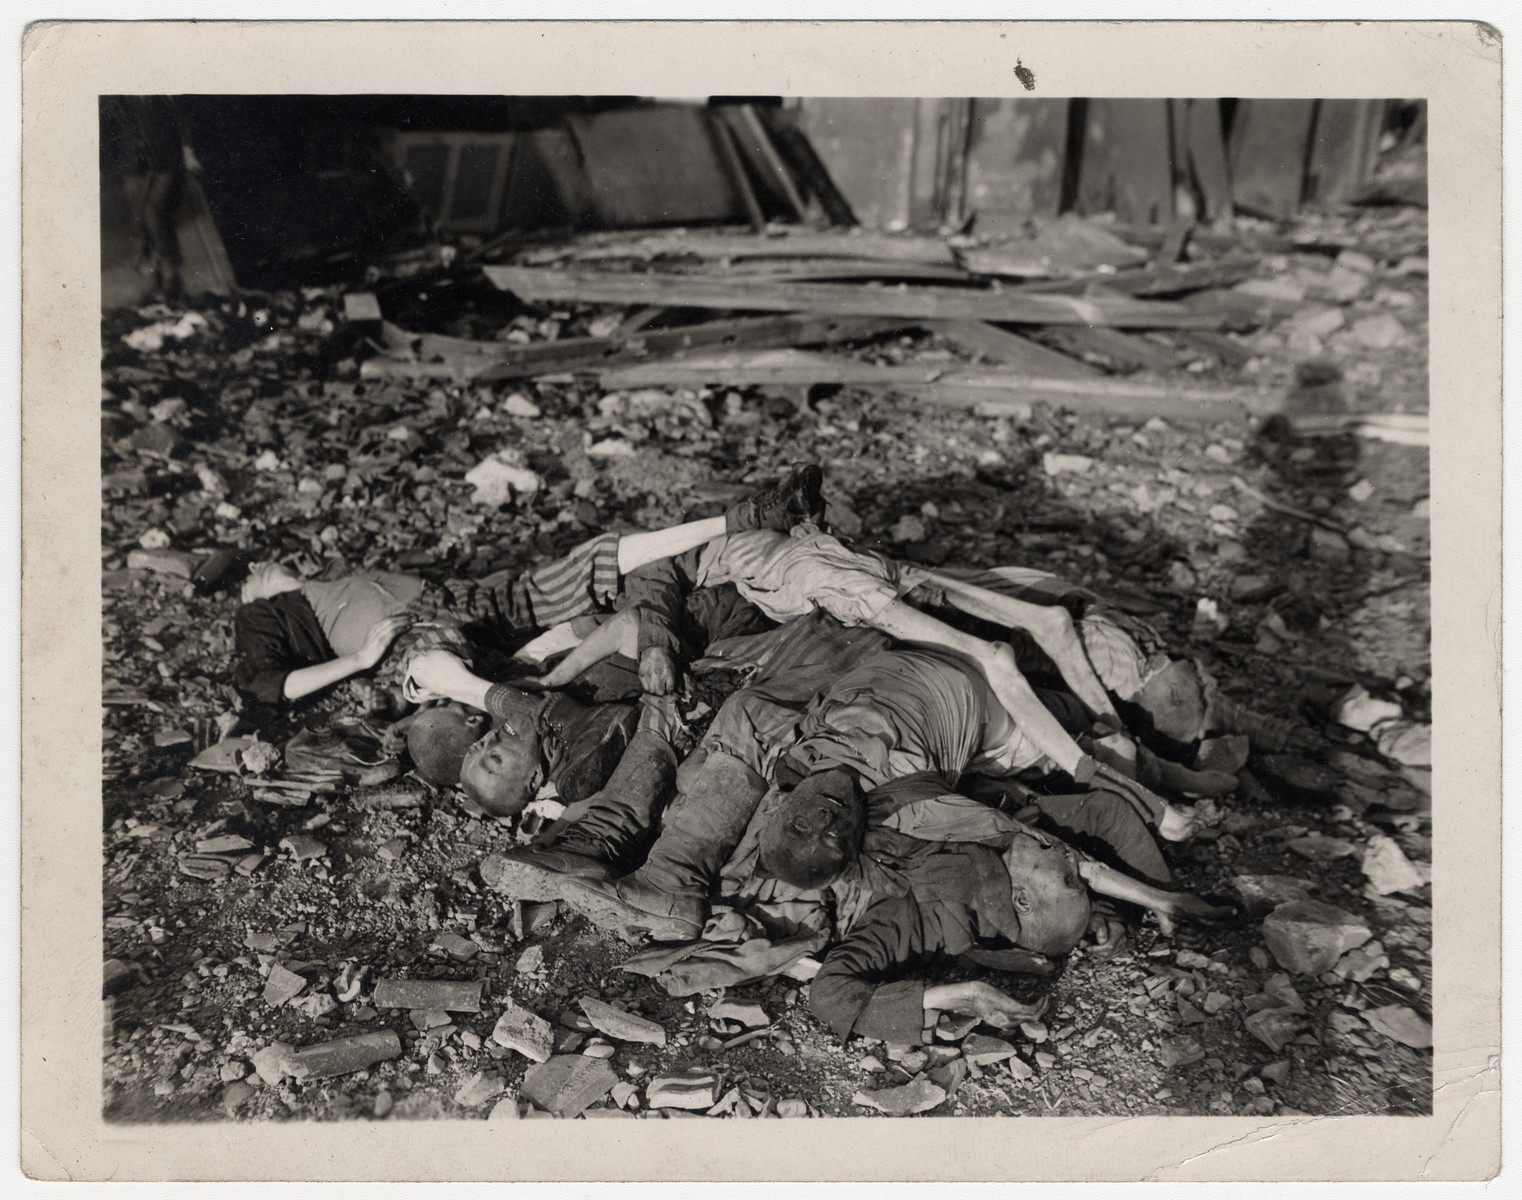 A pile of corpses is mounted on top of the rubble in the Nordhausen concentration camp.